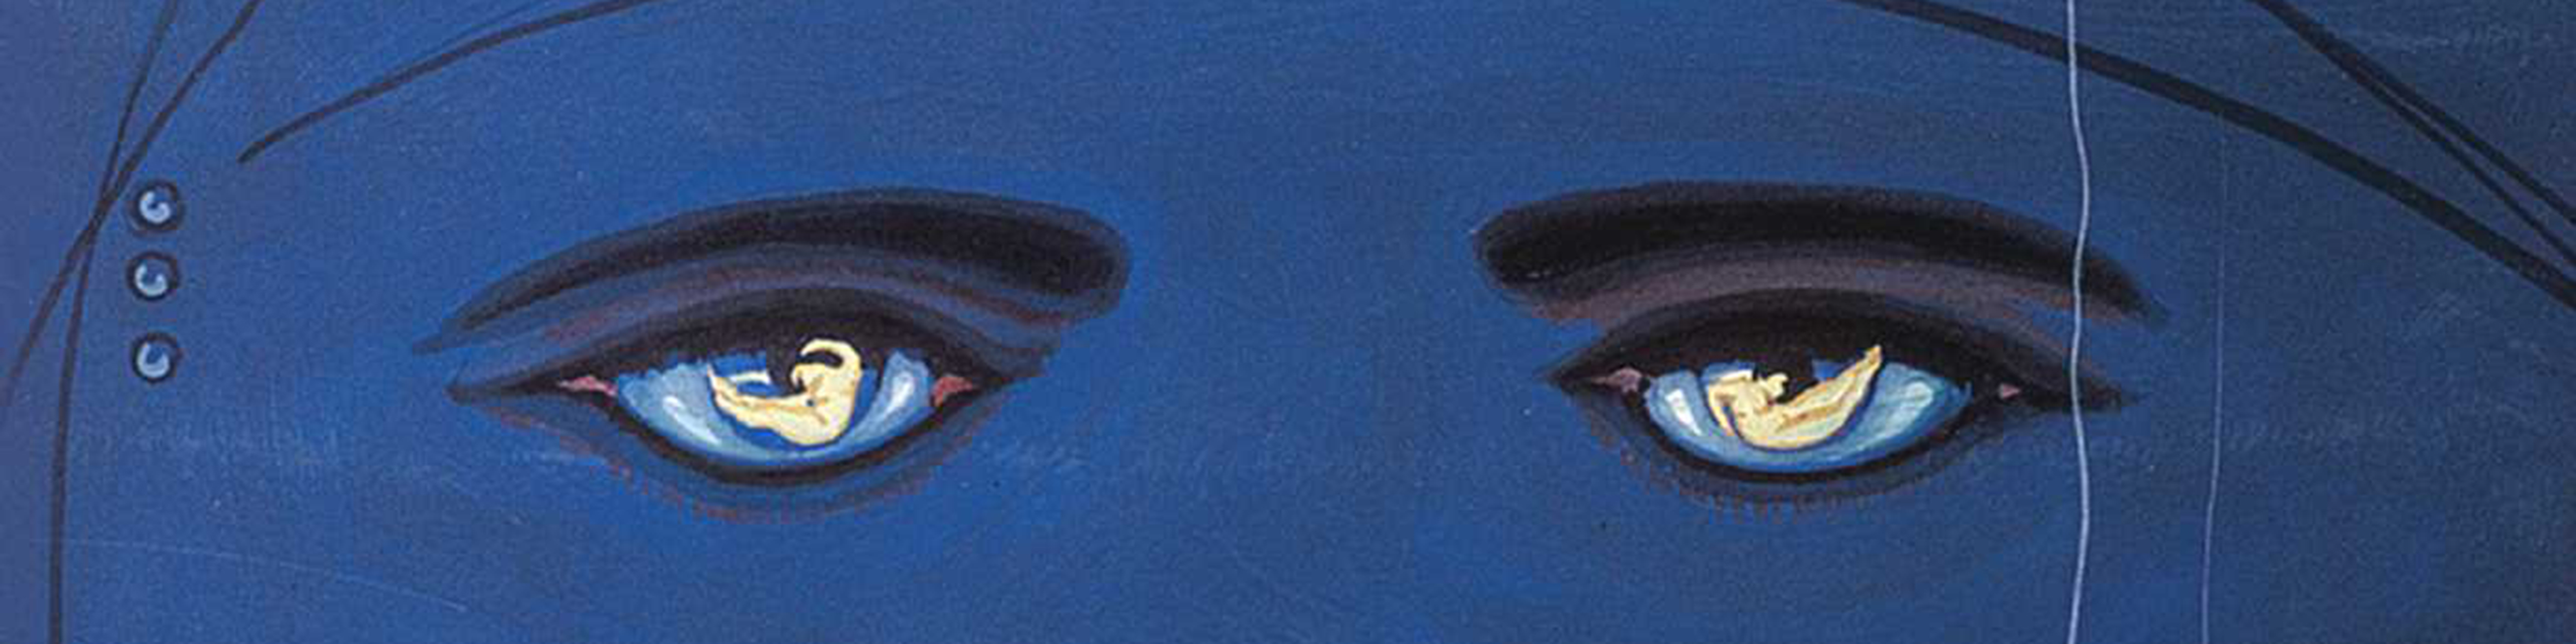 Detail of the cover of the novel The Great Gatsby showing a set of female eyes against a blue background